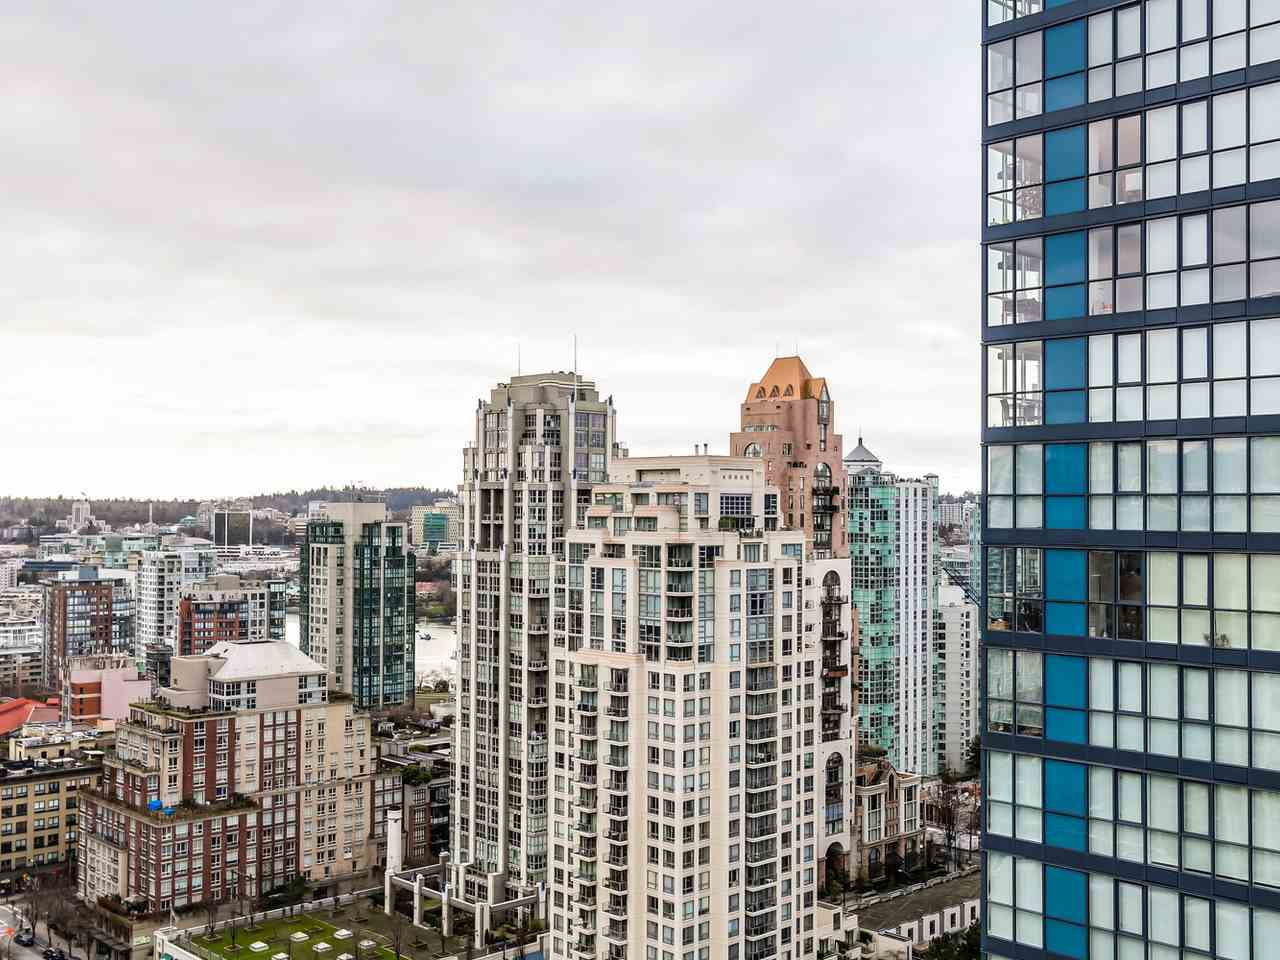 Photo 11: 2308 1155 SEYMOUR STREET in Vancouver: Downtown VW Condo for sale (Vancouver West)  : MLS® # R2026499